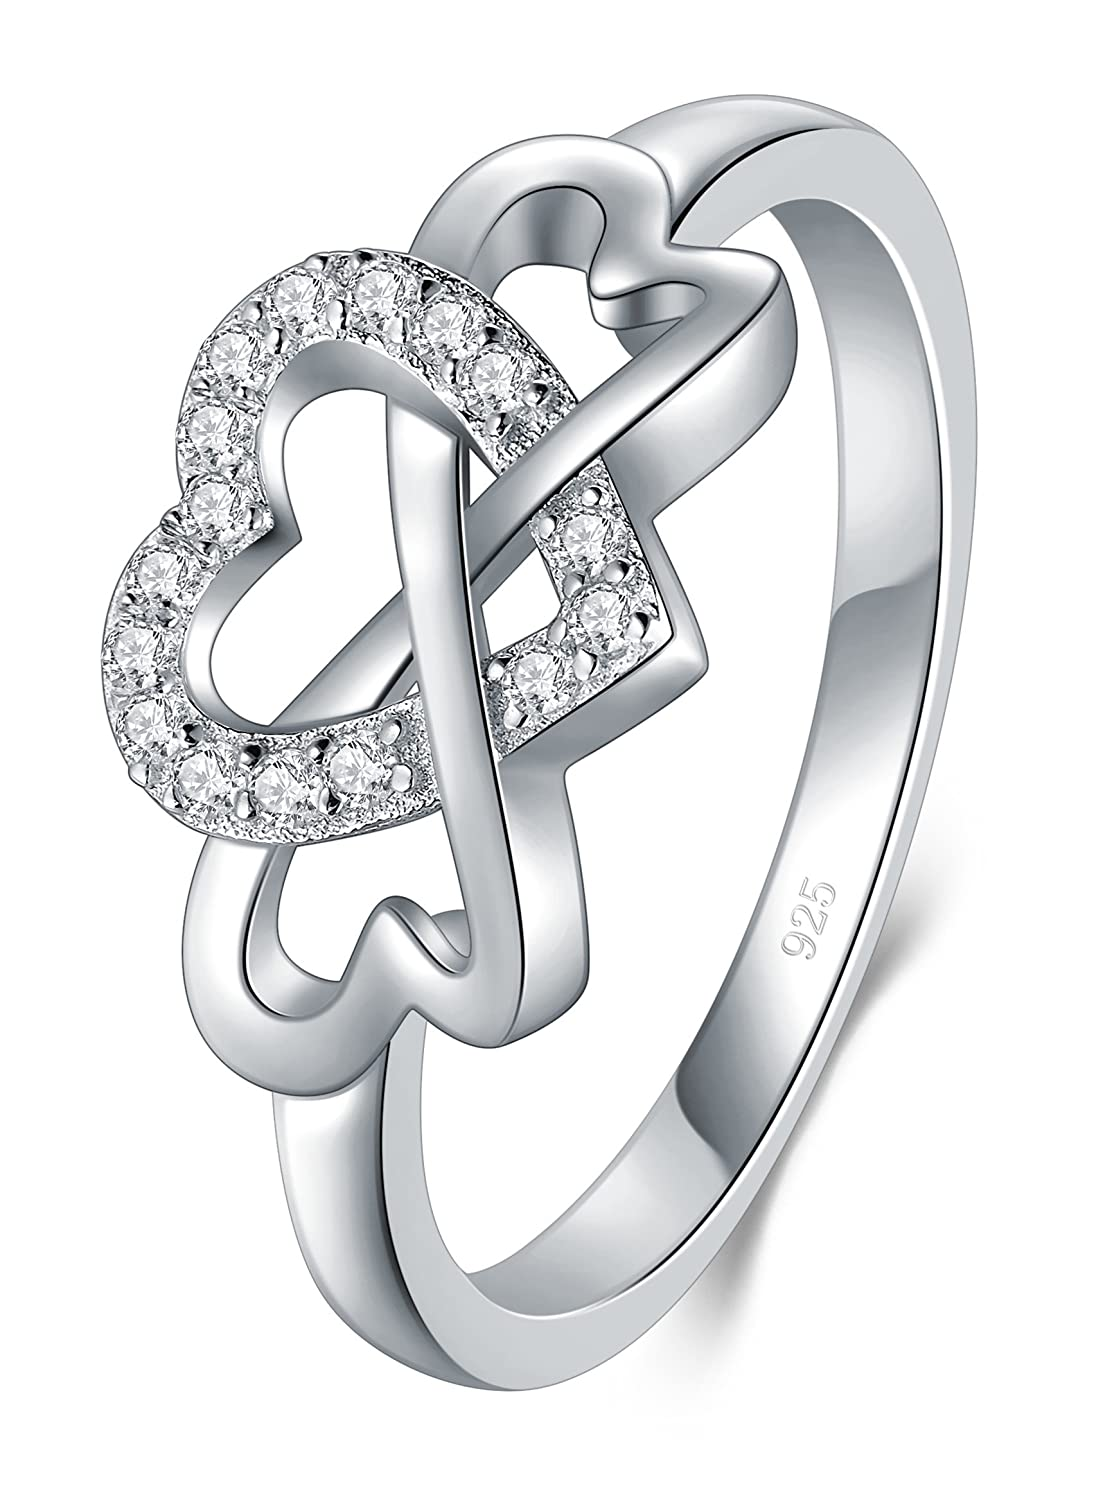 BORUO 925 Sterling Silver Ring, High Polish Cubic Zirconia Infinity and Heart Tarnish Resistant Comfort Fit Ring BRC Creative Corp.